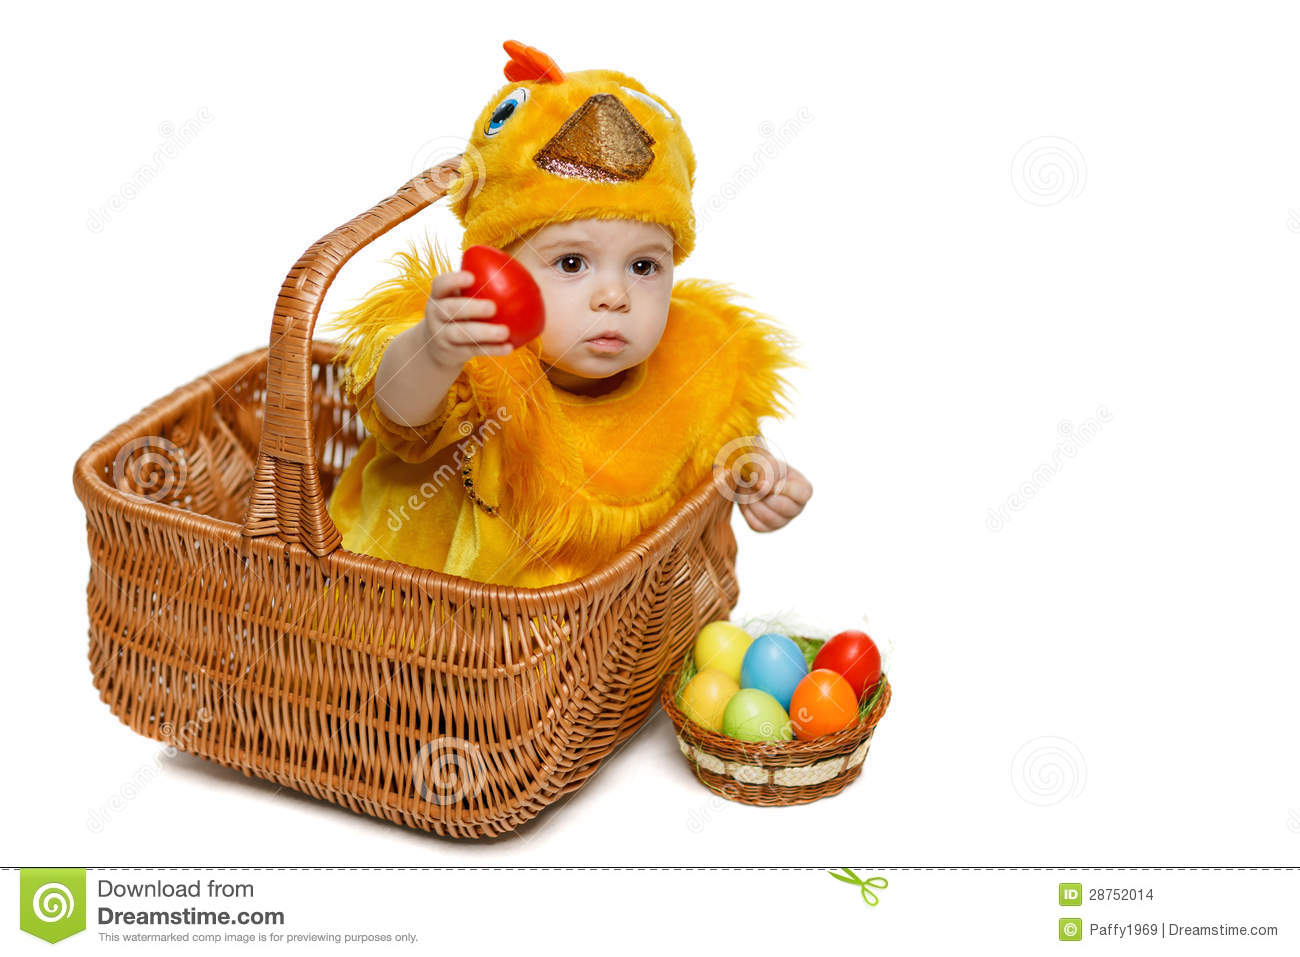 Baby sitting in Easter basket in chicken costume with Easter eggs  sc 1 st  Dreamstime.com & Baby Sitting In Easter Basket In Chicken Costume With Easter Eggs ...